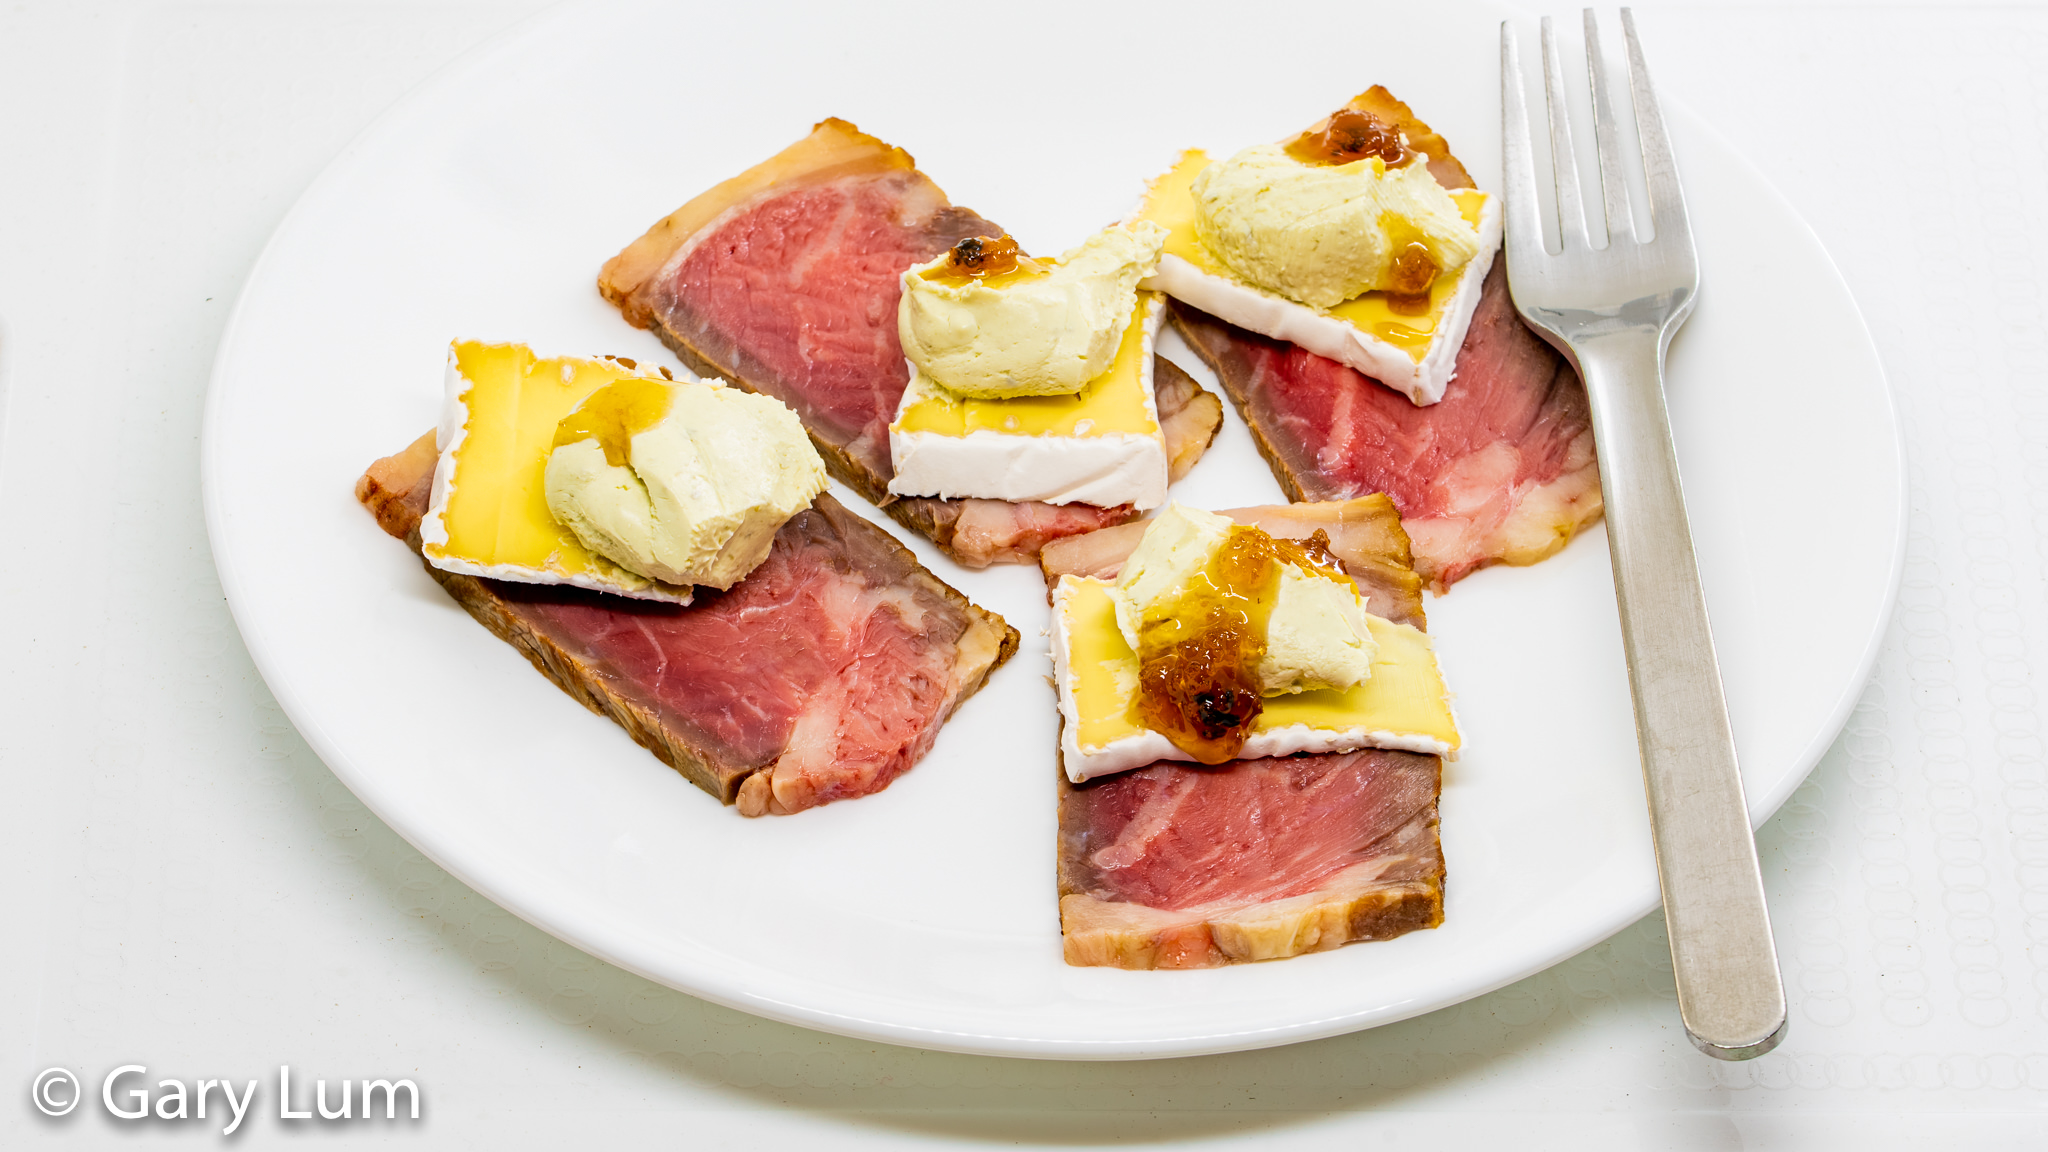 Leftover rib eye with Tasmanian Heritage triple cream brie, Philadelphia cream cheese, and truffle honey. Gary Lum.